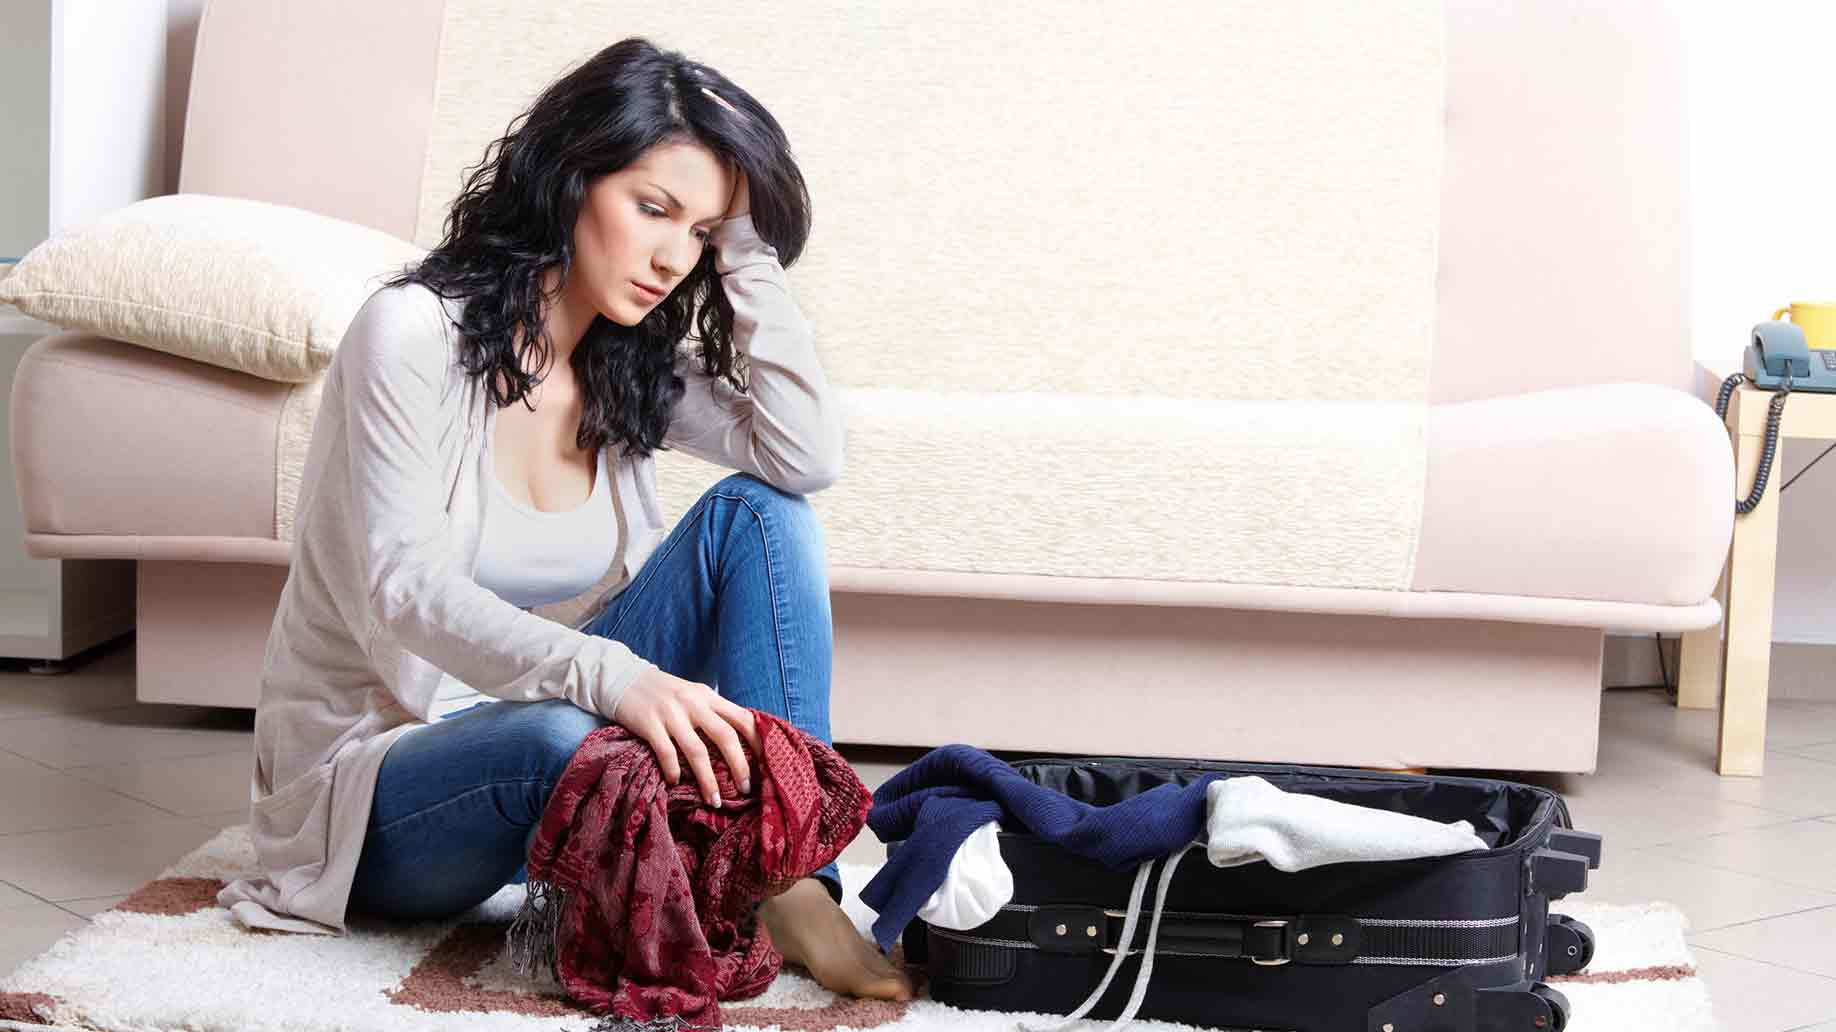 young girl preparing her luggage